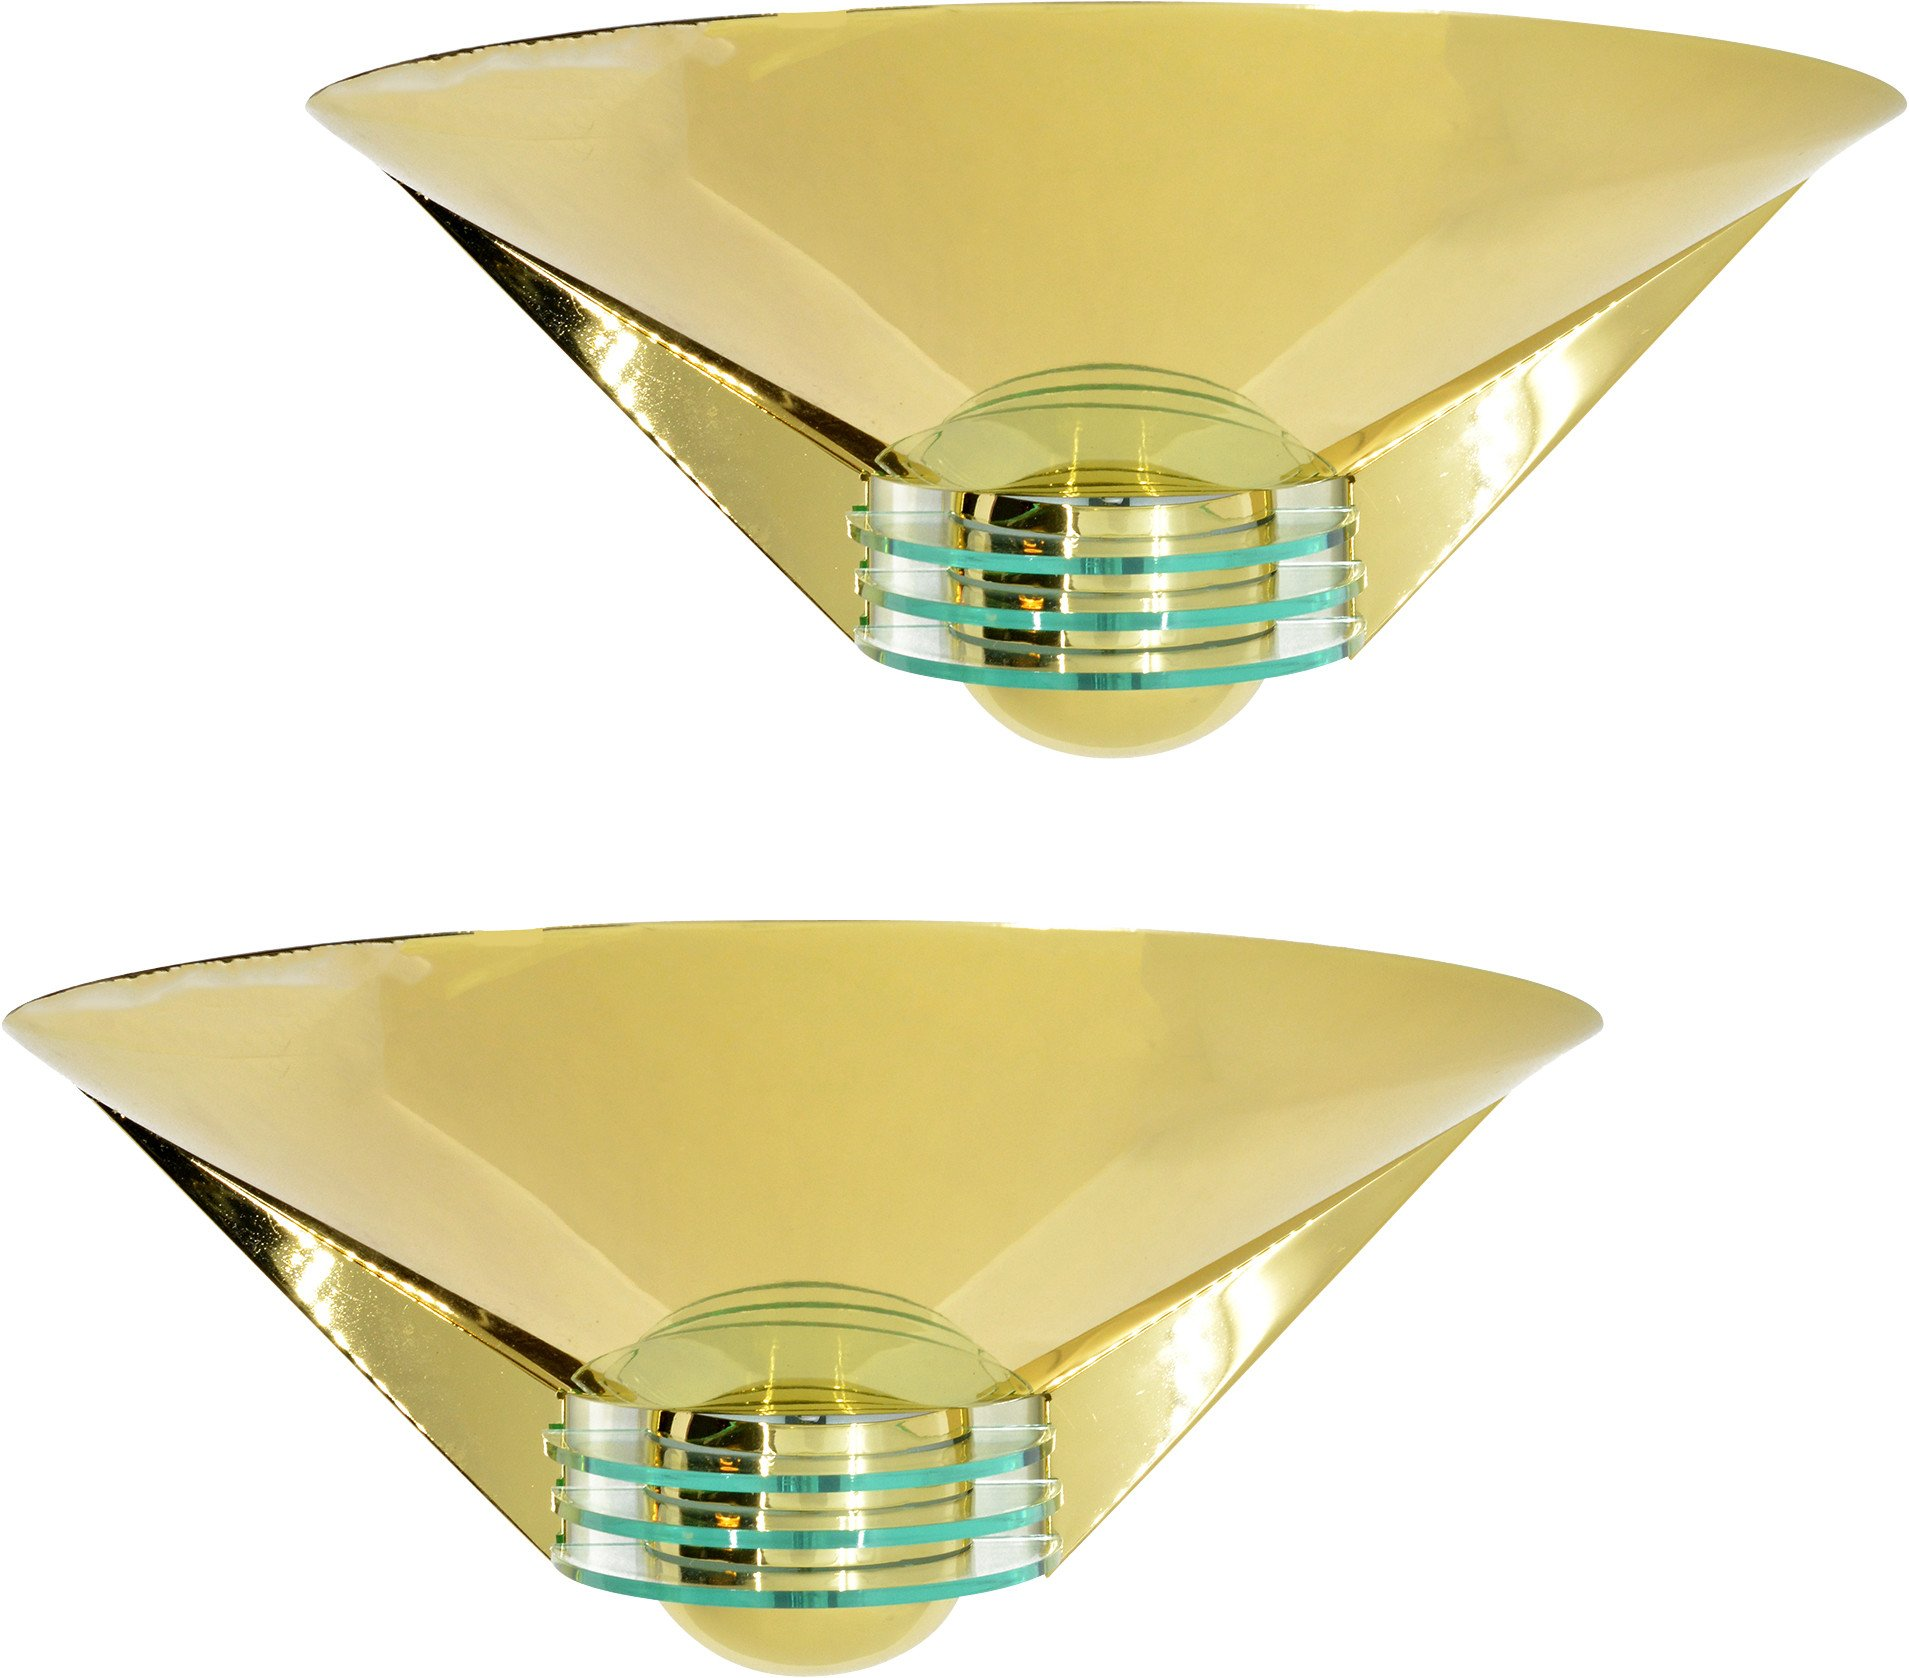 Pair of Wall Lamps, Deco Leuchten, Germany, 1980s